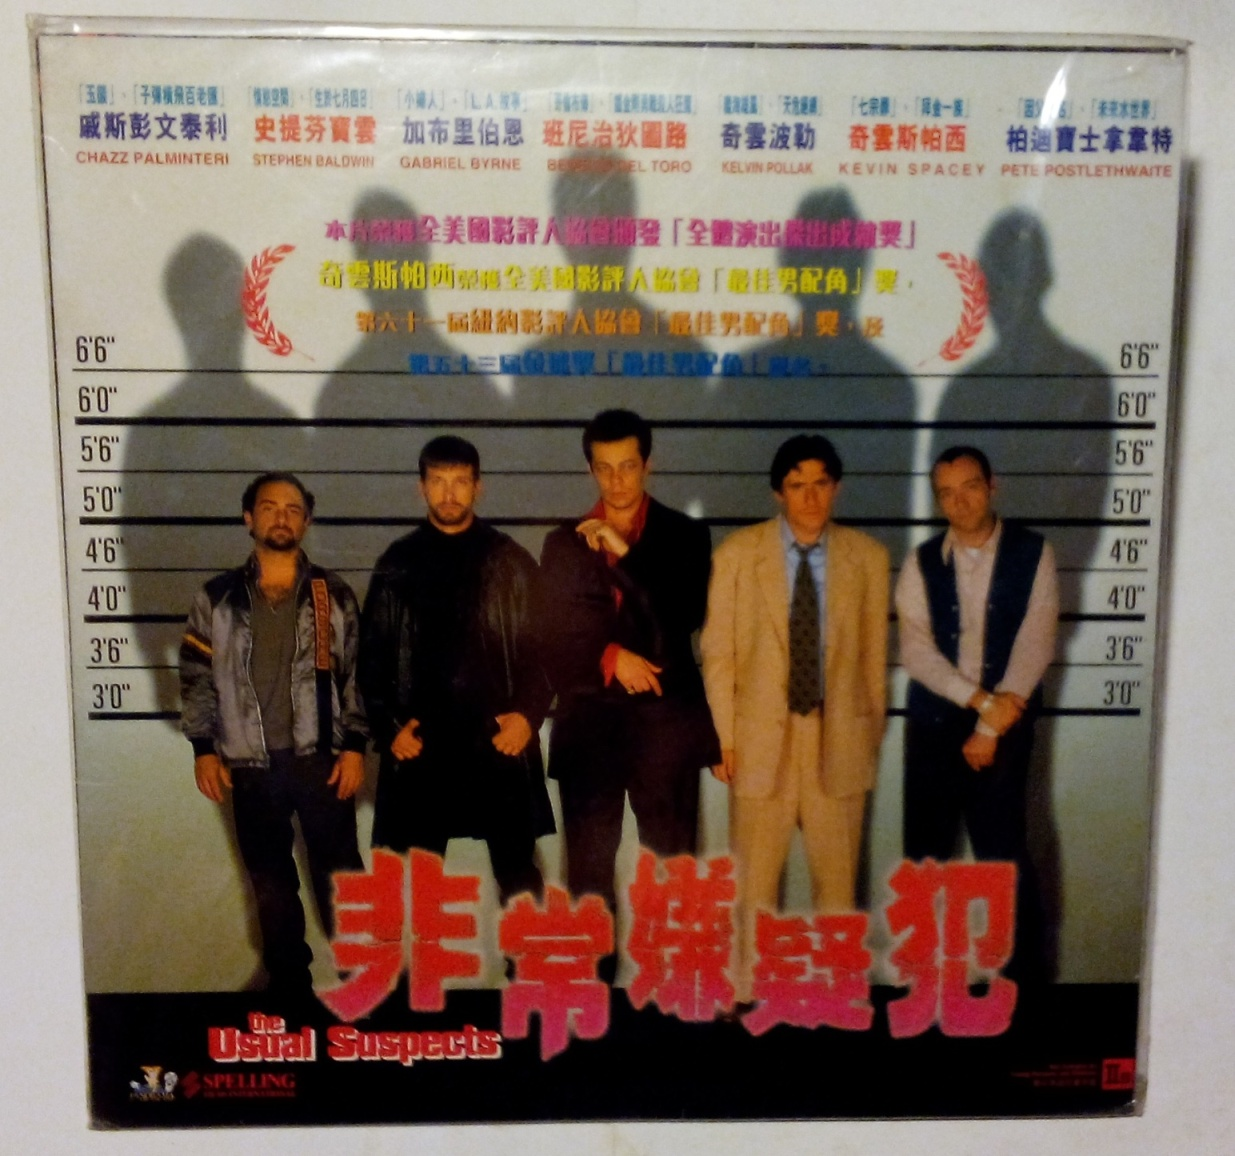 The Usual Suspects 《非常嫌疑犯》 港版 [LD]